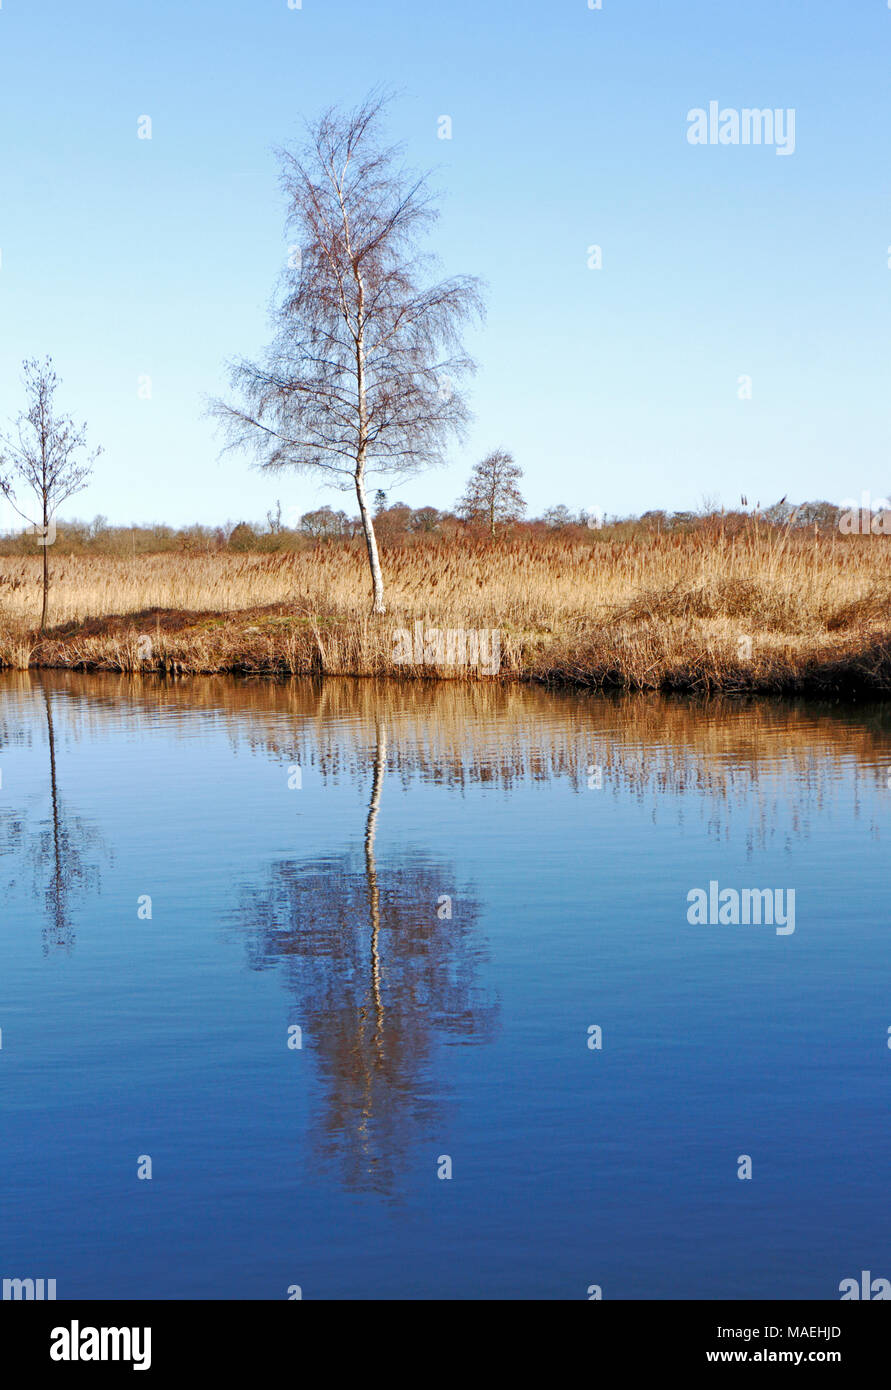 A view of a Silver Birch tree and reflection on the River Ant on the Norfolk Broads at Irstead, Norfolk, England, United Kingdom, Europe. - Stock Image